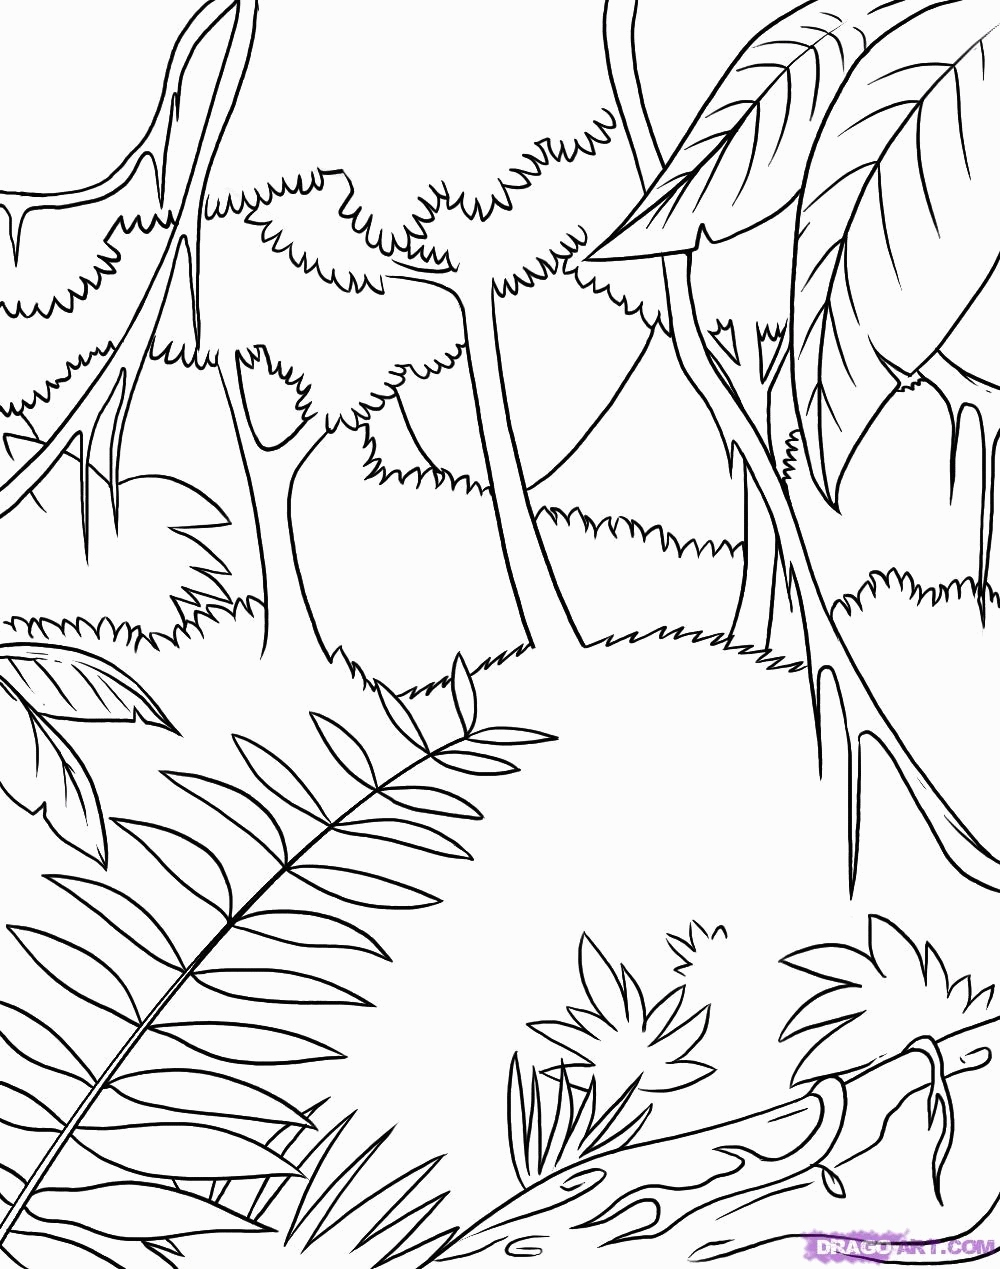 rainforest tree coloring page rainforest tree drawing at getdrawings free download coloring rainforest tree page